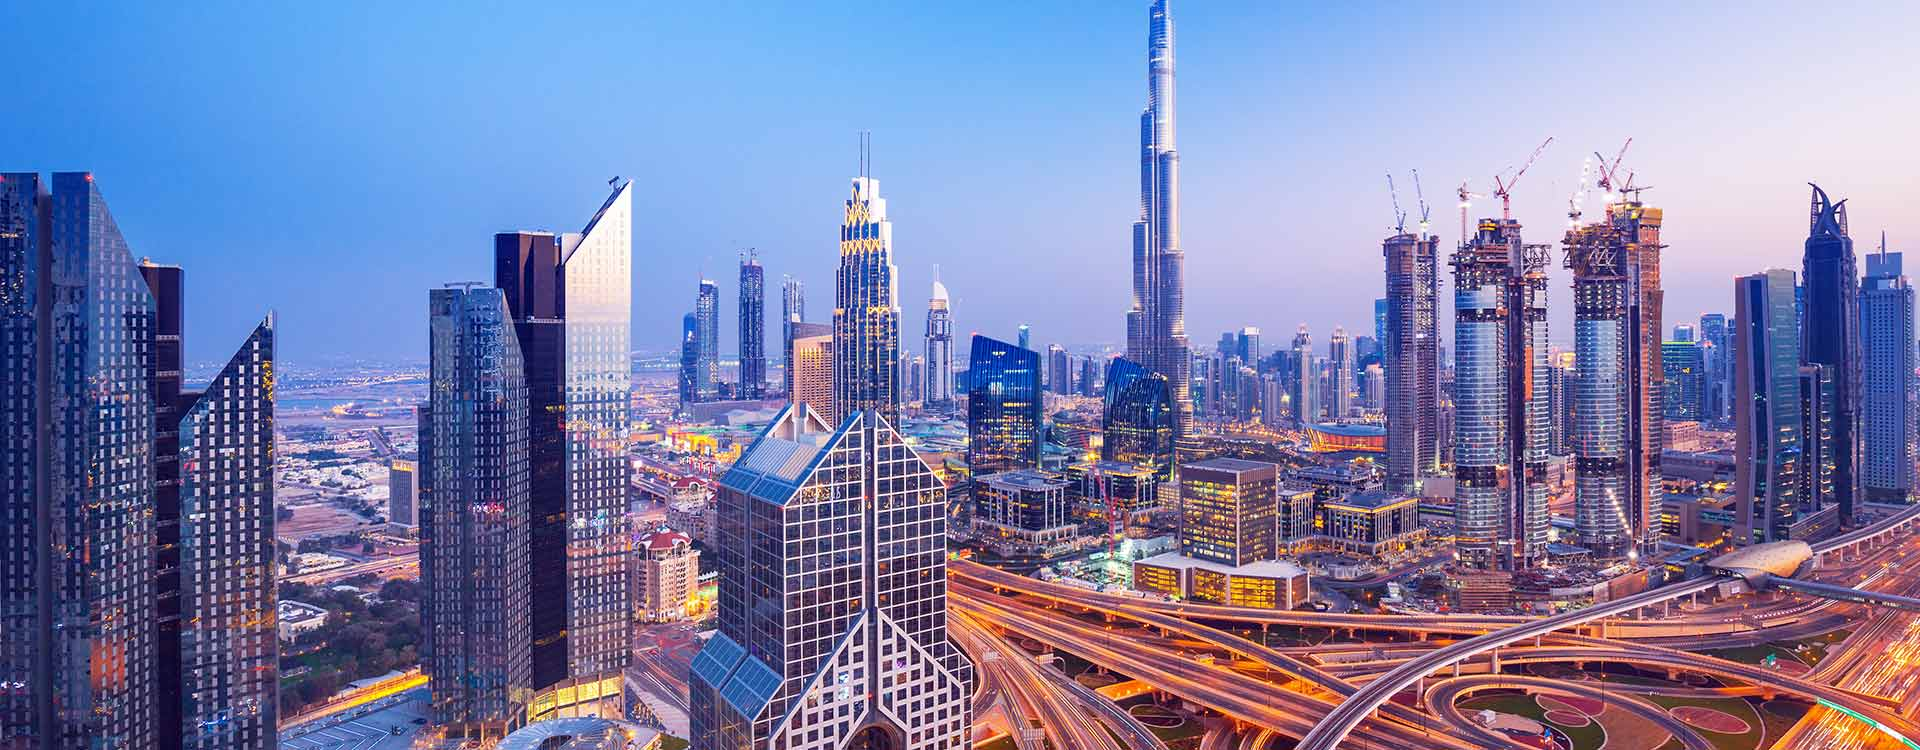 6 Astounding Places to Visit in Dubai in 2020